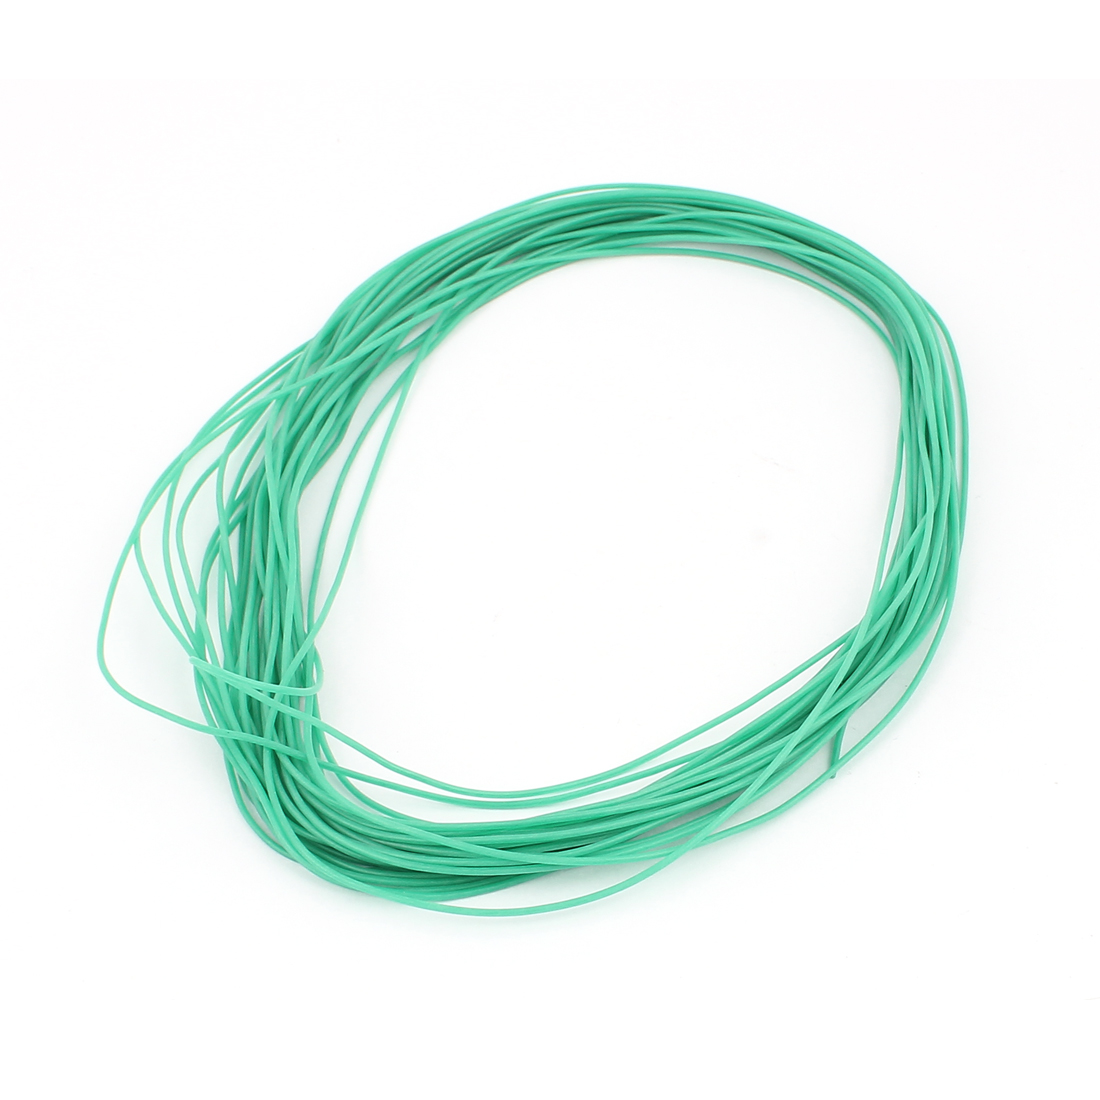 15M 28AWG Electric Copper Core Flexible Silicone Wire Cable Green